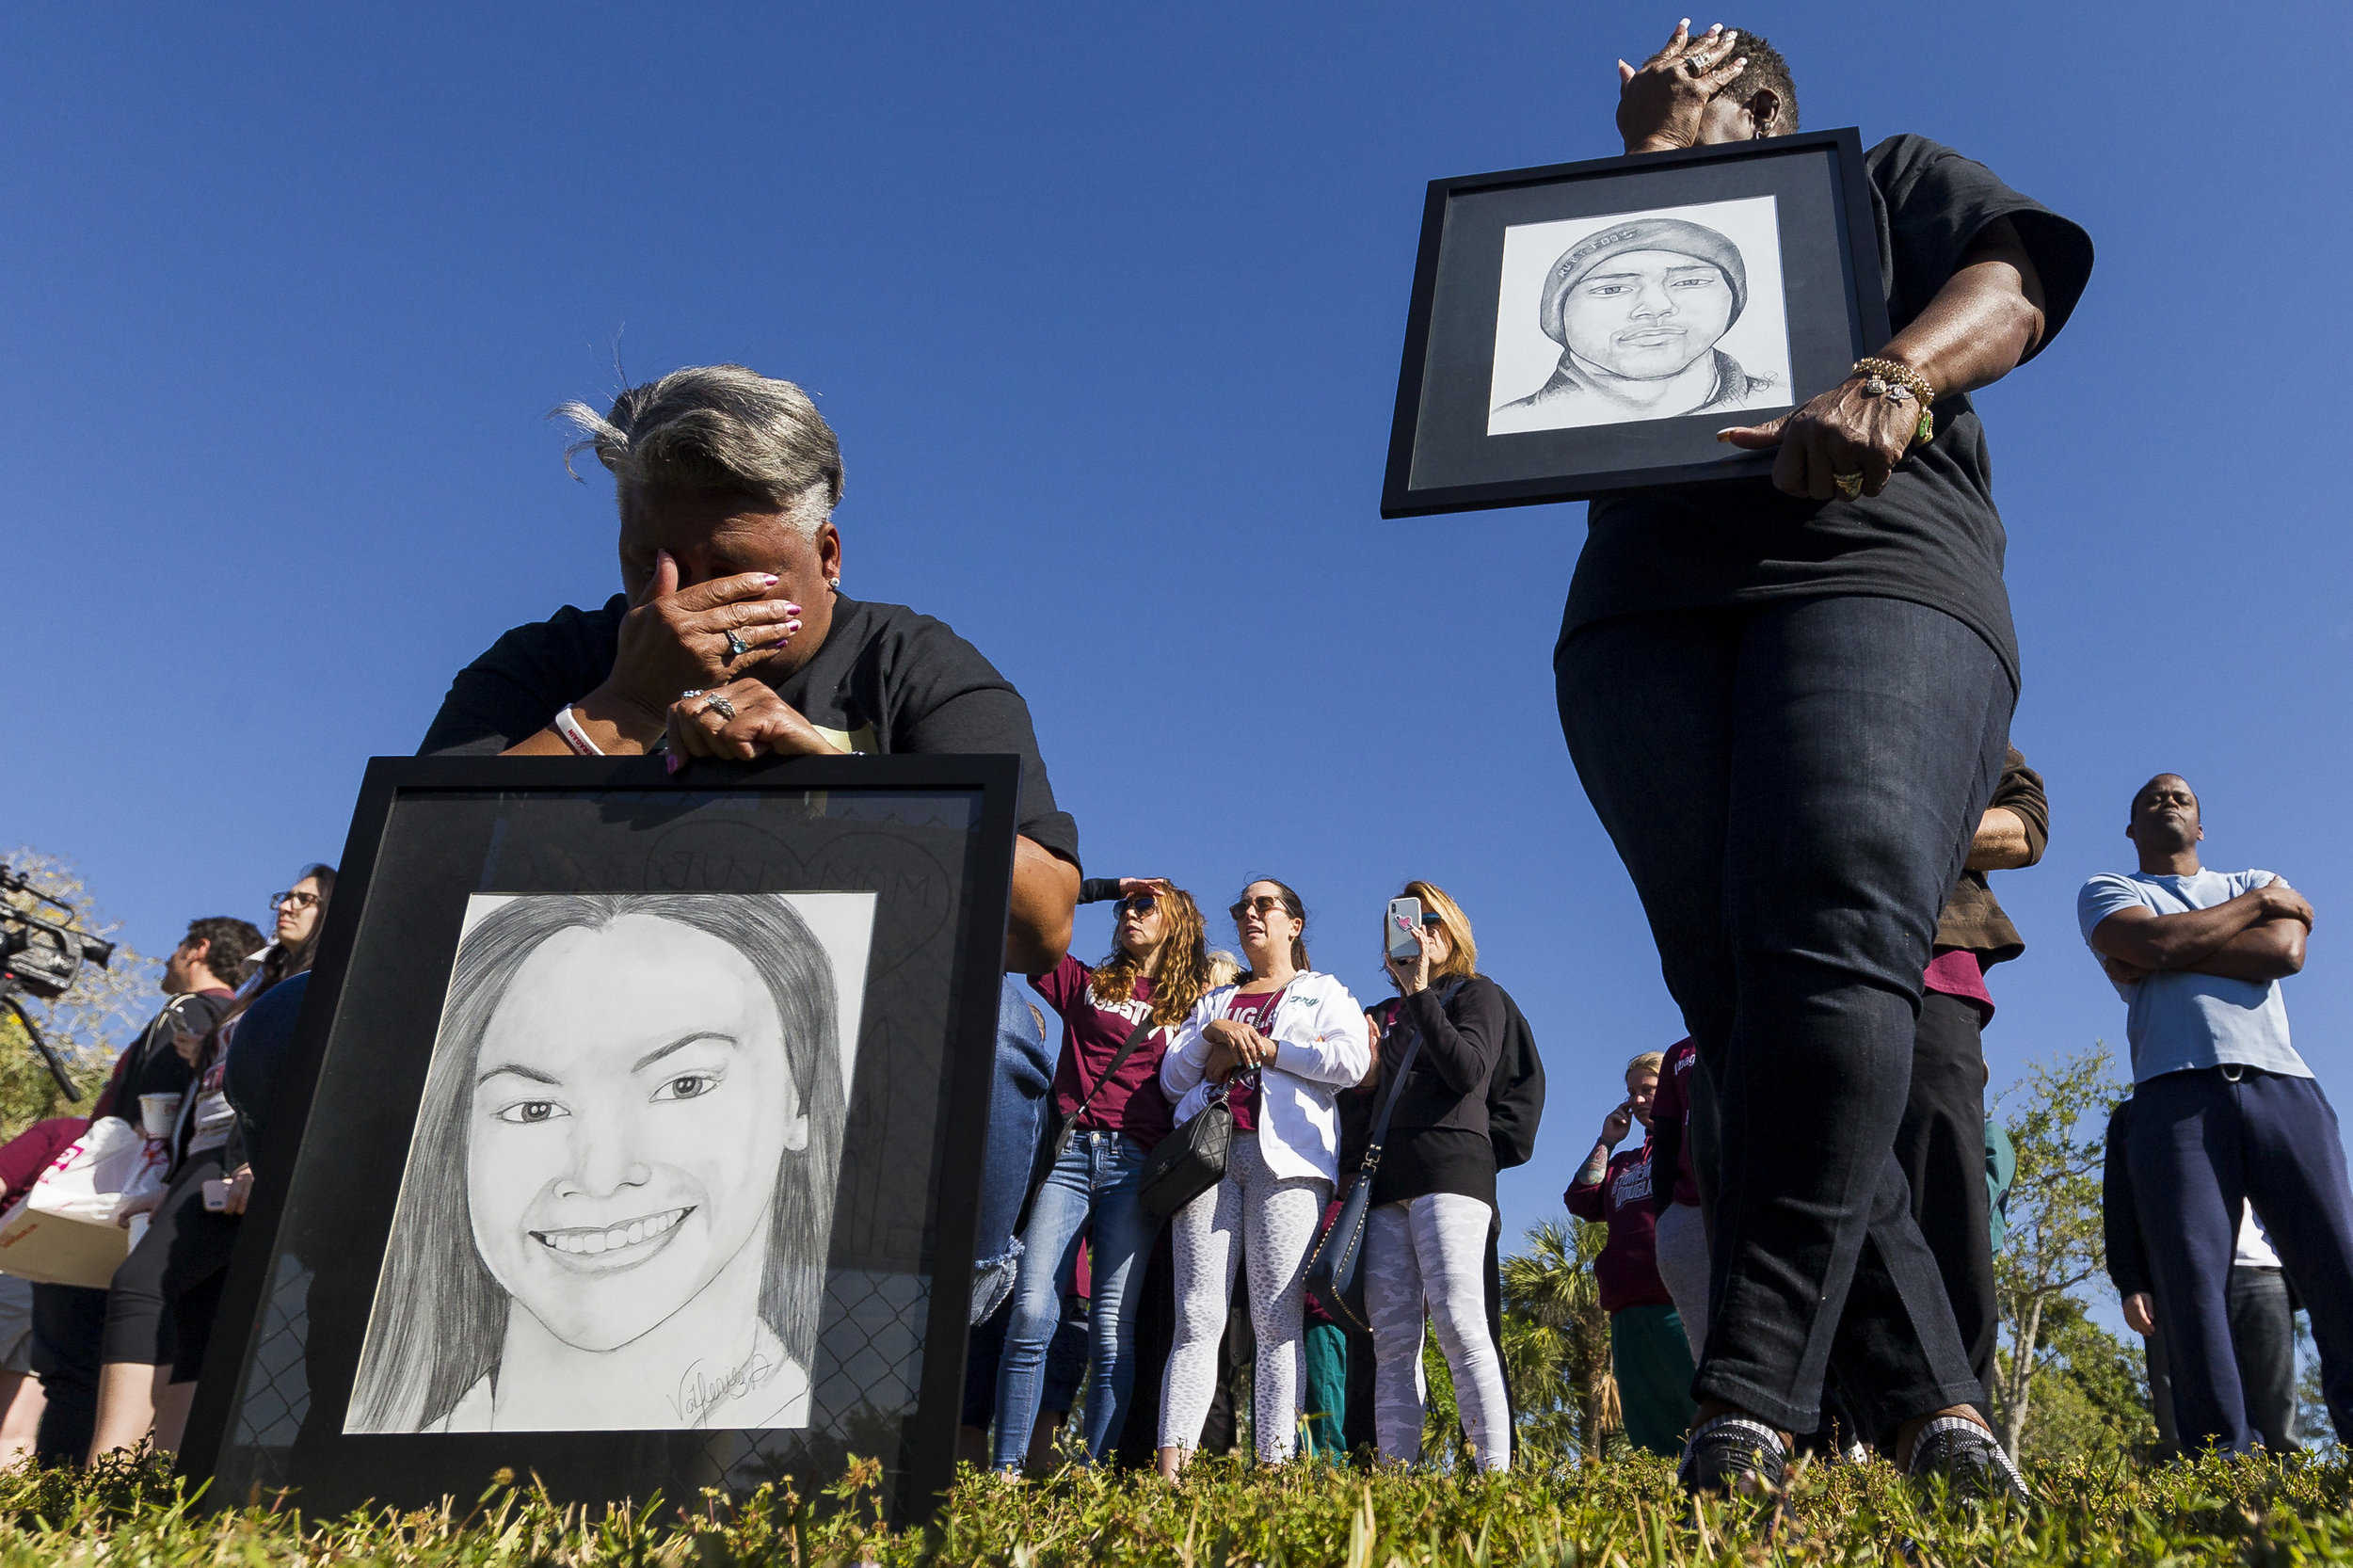 Pat Gibson, left, and Valerie Davis cry while holding drawings of two of the victims killed in the Parkland shooting during the one-month anniversary of the incident outside Marjory Stoneman Douglas High School on Wednesday, March, 14, 2018.